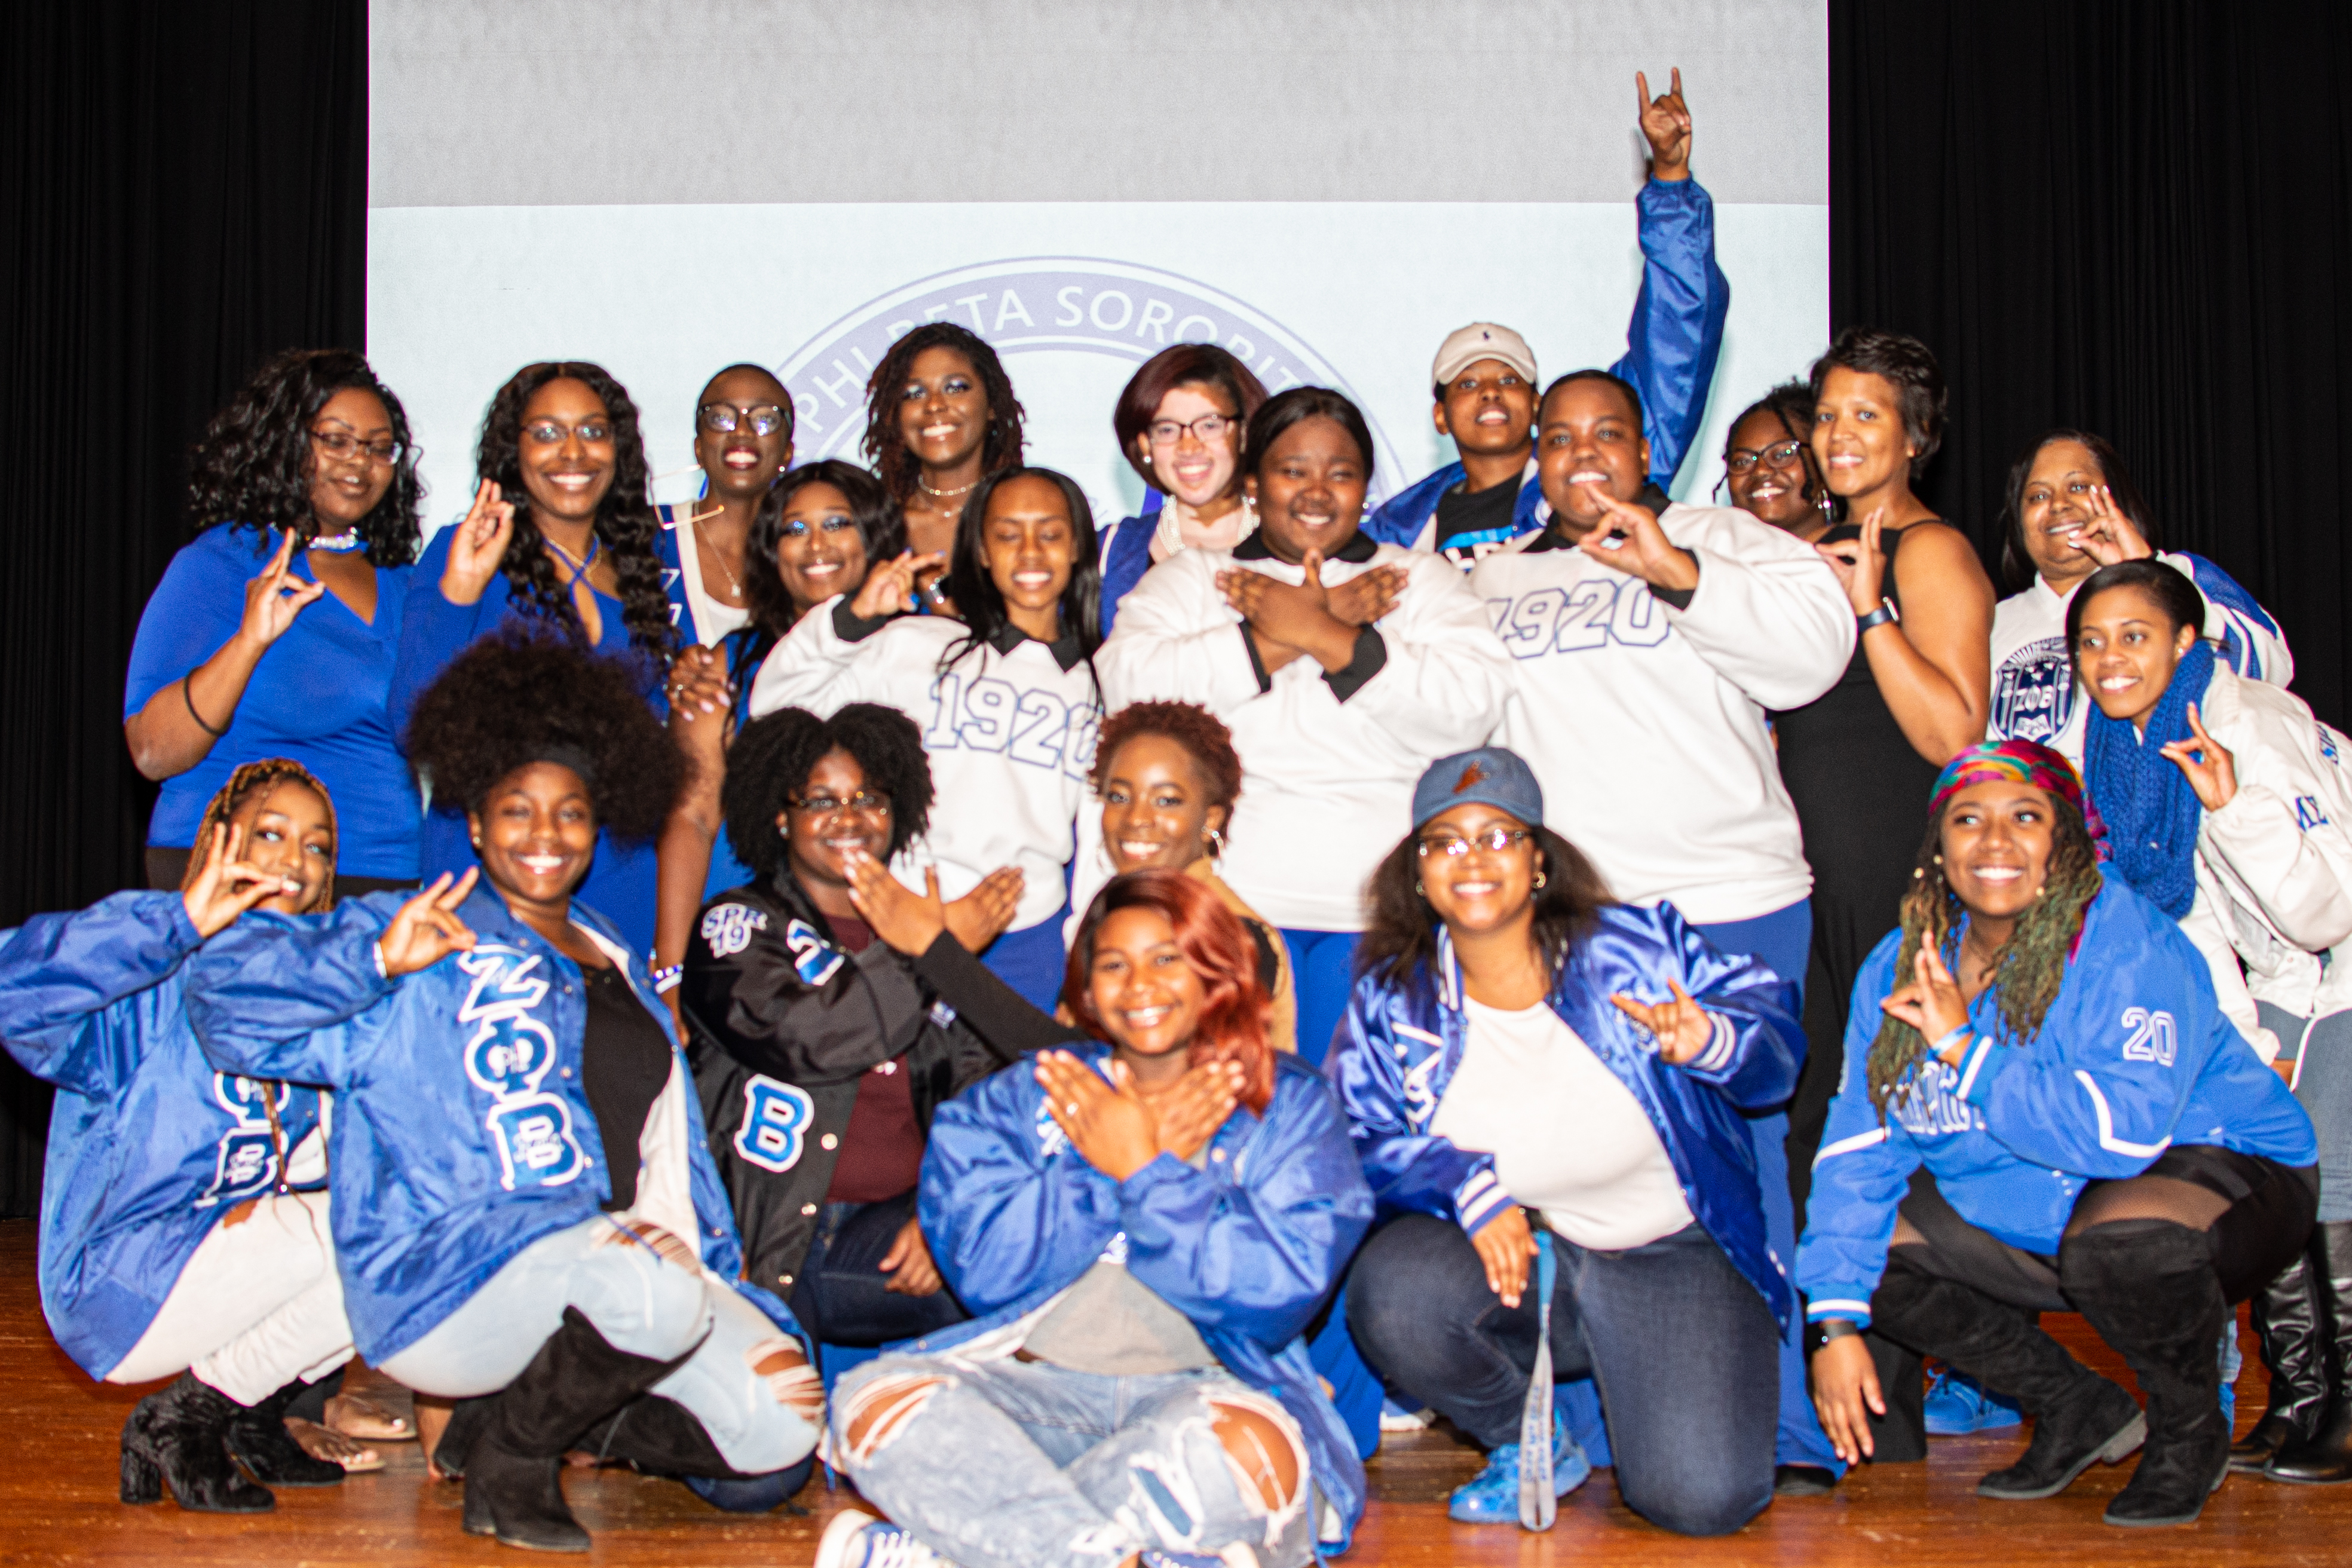 Members of Zeta Phi Beta Sorority, Inc. gather on stage for a group photo after their new member presentation.